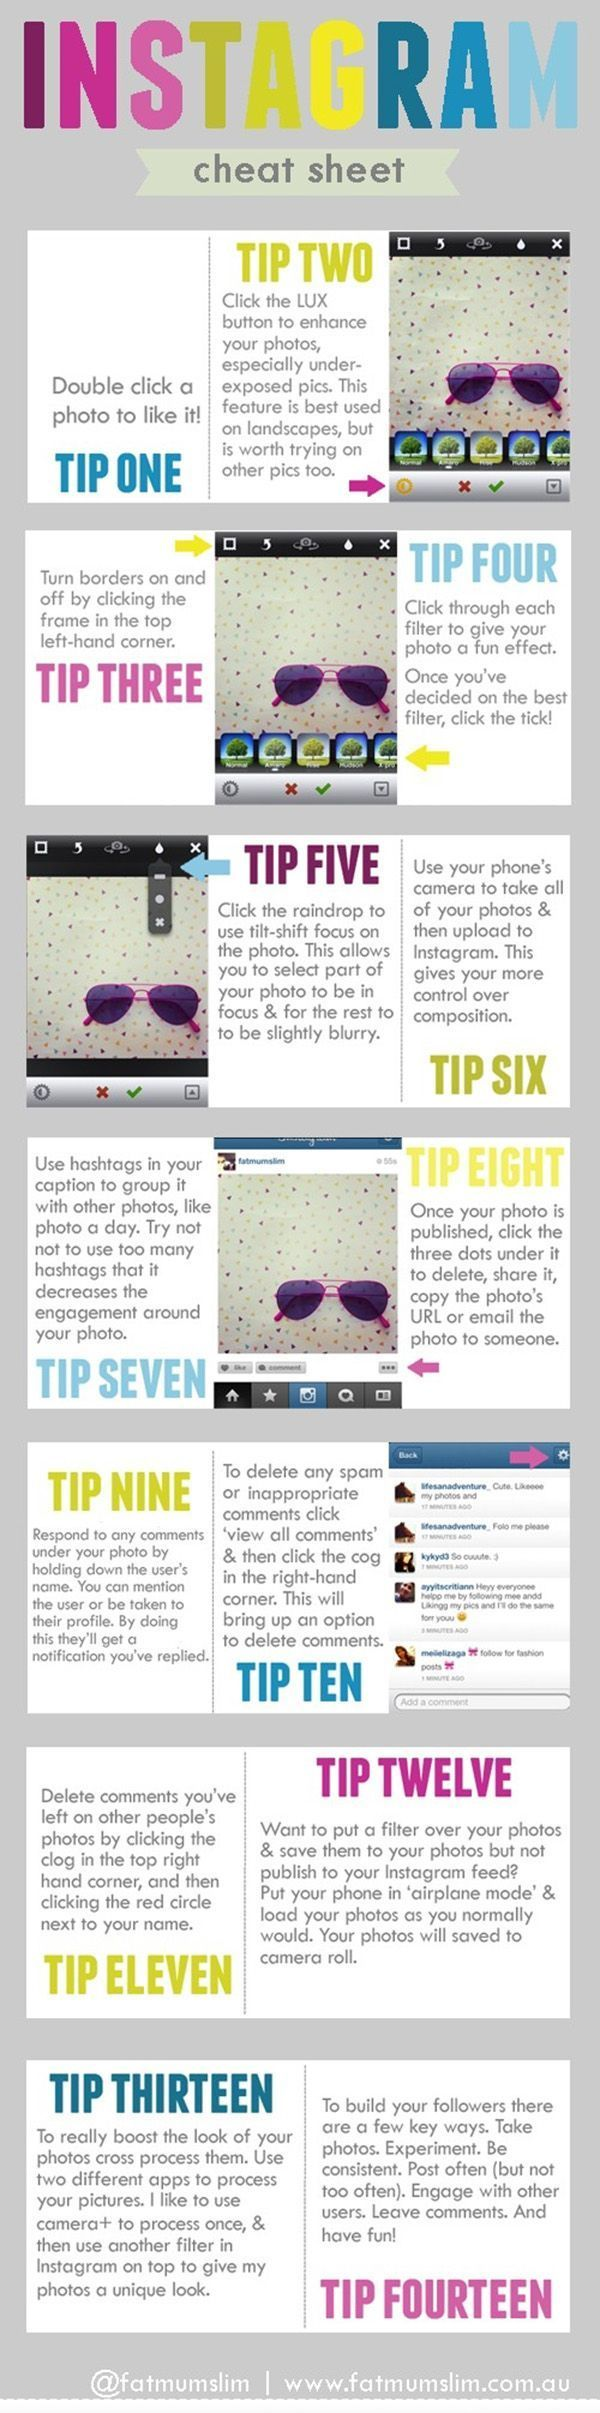 Social media tips | Instagram Cheat Sheet to Make Your our Social Media Marketing Strategy Work!